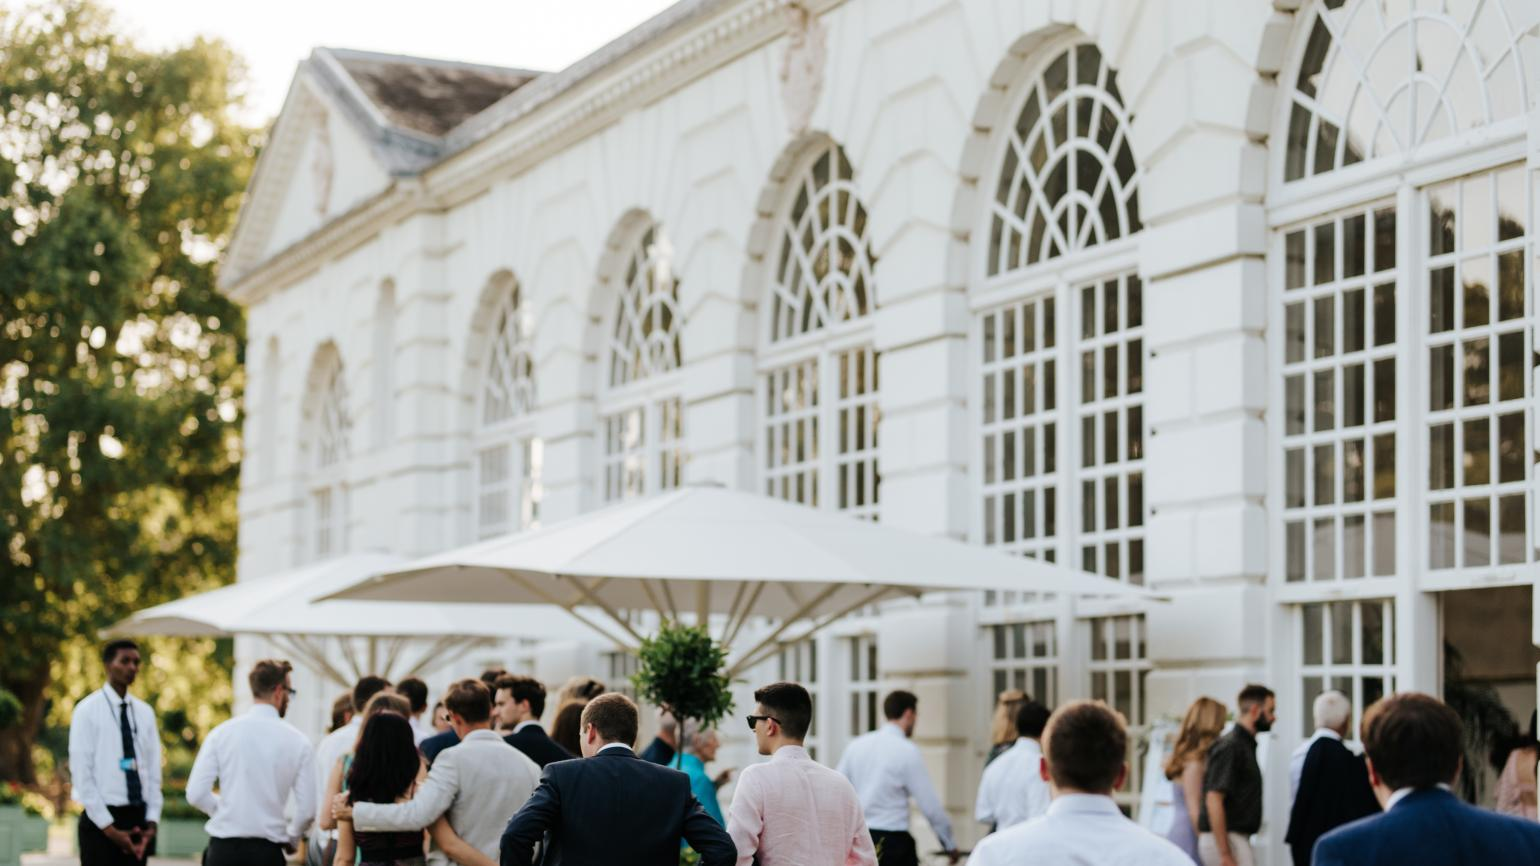 The Orangery, Private events